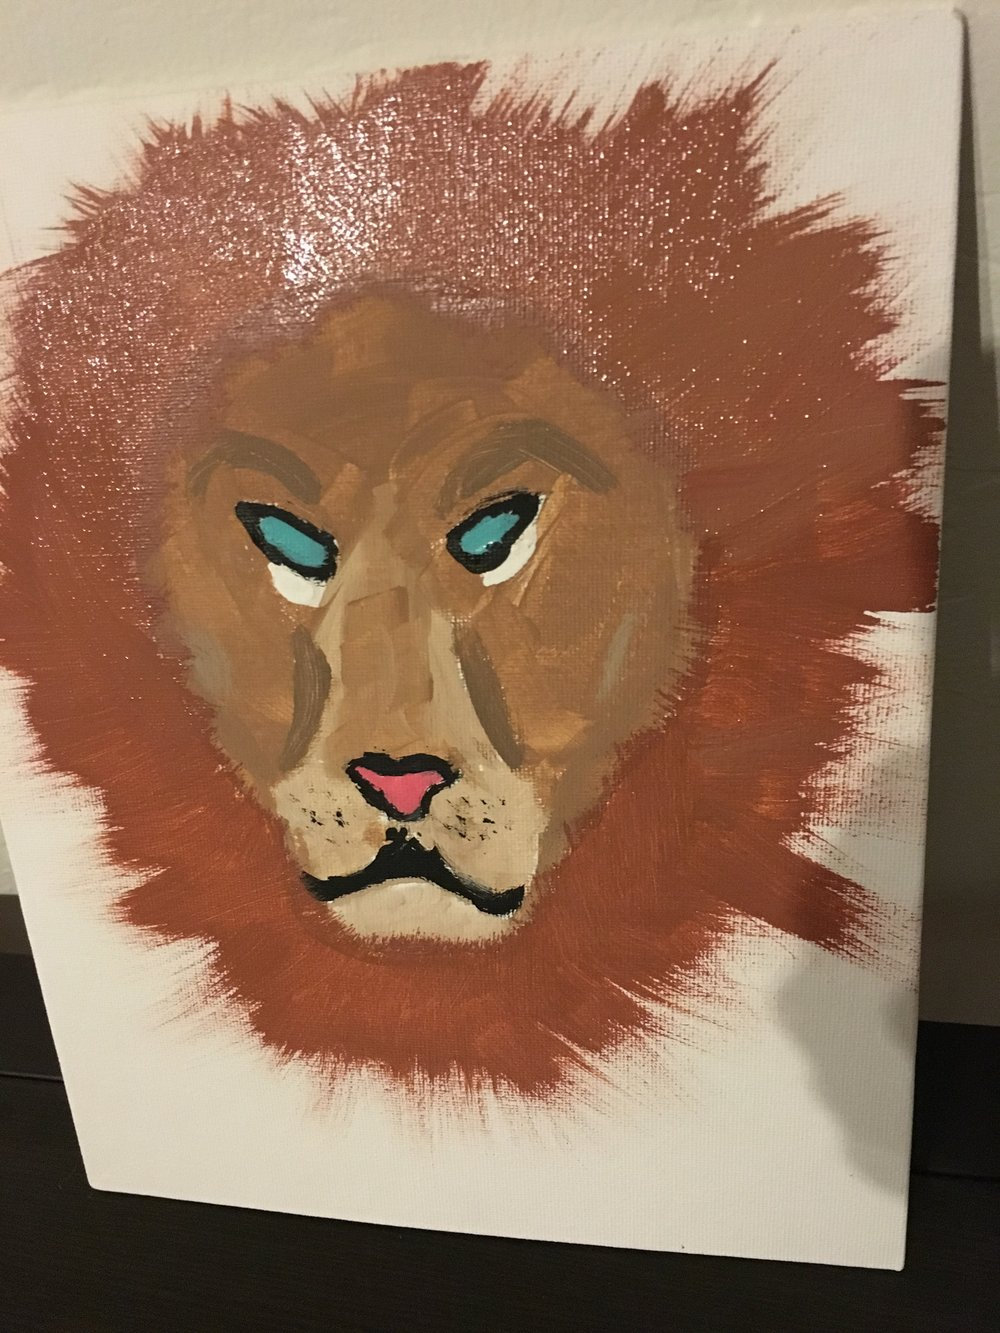 My friends and i had a paint night. For a few bottles of Acrylic Paint, canvases, and paintbrushes, i spent a total of $20.